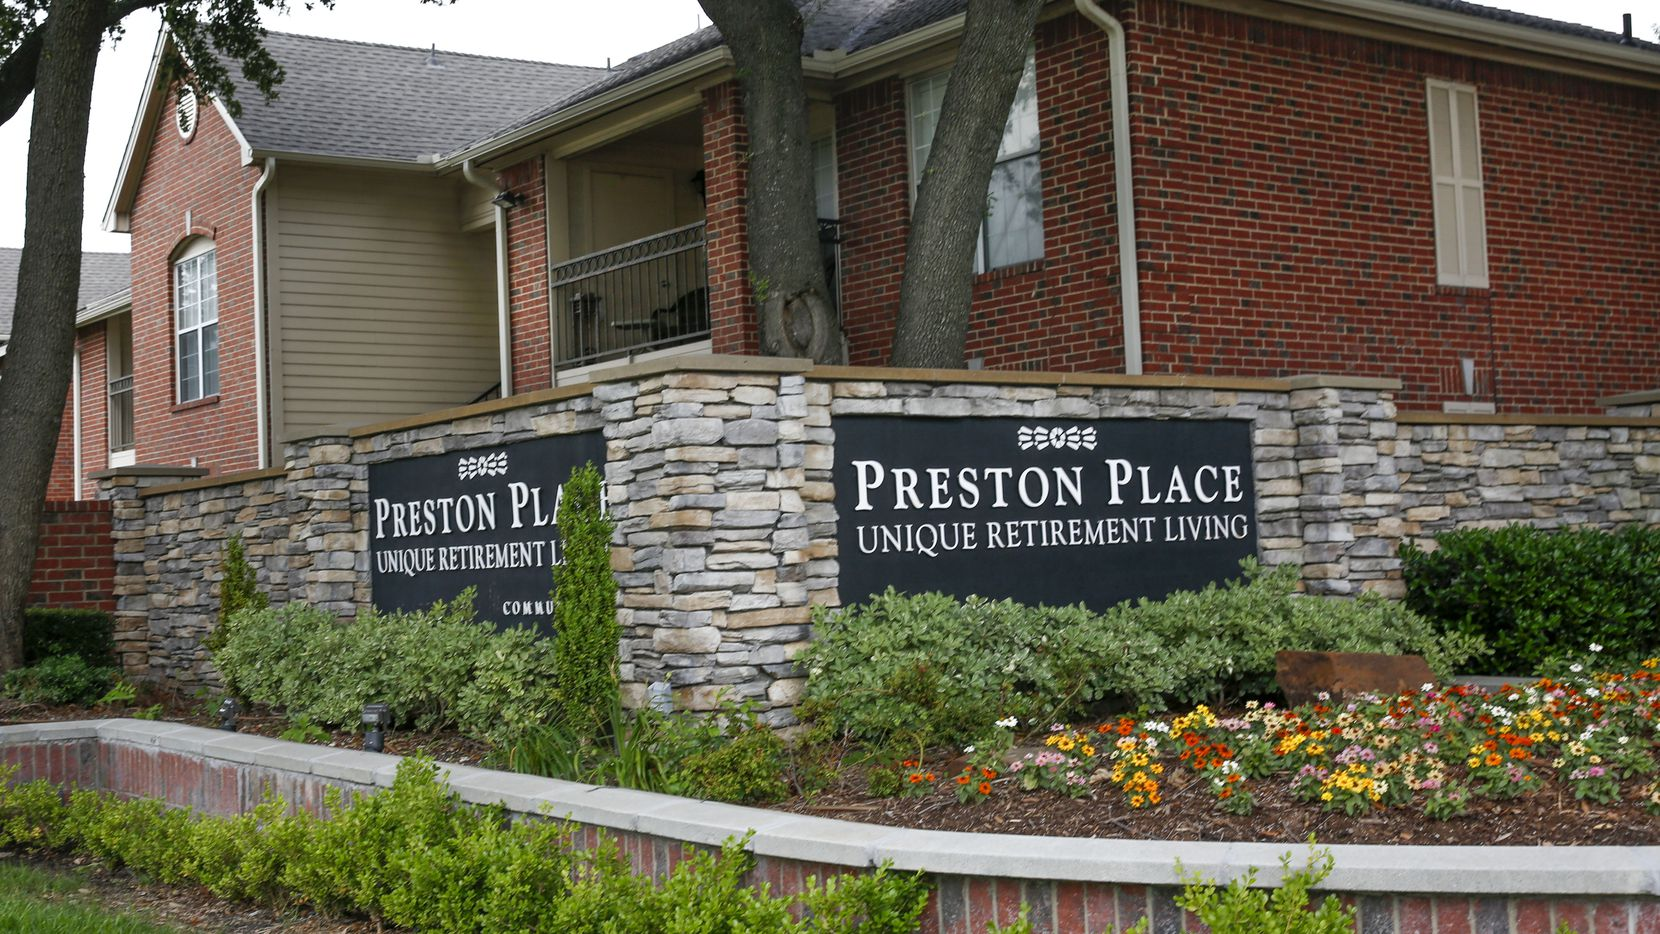 Preston Place Retirement Community located in Plano, Texas on Wednesday, June 5, 2019. One of the communities where Billy Chemirmir, accused serial killer, targeted elderly women. (Brian Elledge/The Dallas Morning News)